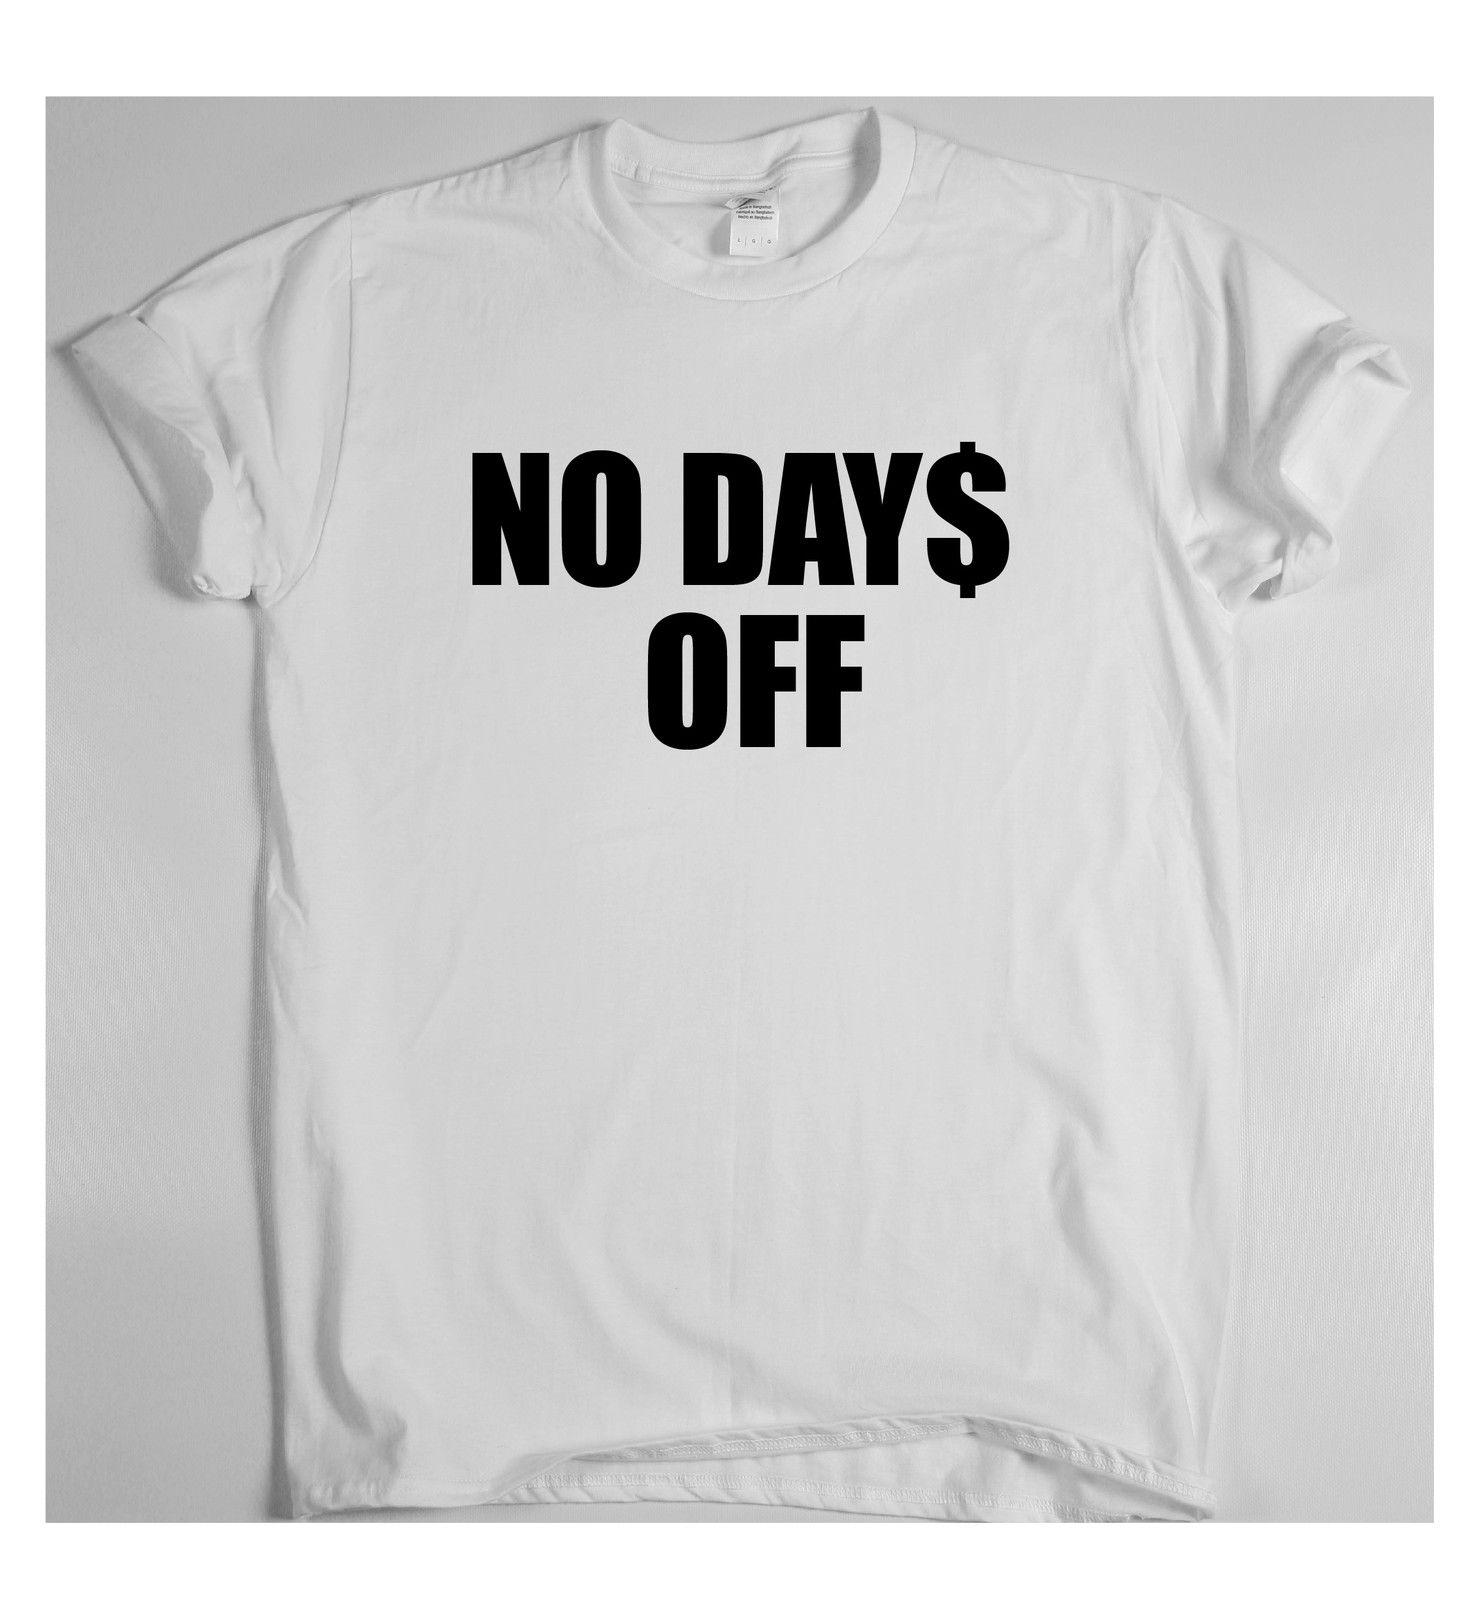 33744e0a31181 NO DAY$ OFF motivational t shirt training sport money rich tee success work  Funny free shipping Unisex Casual Tshirt top